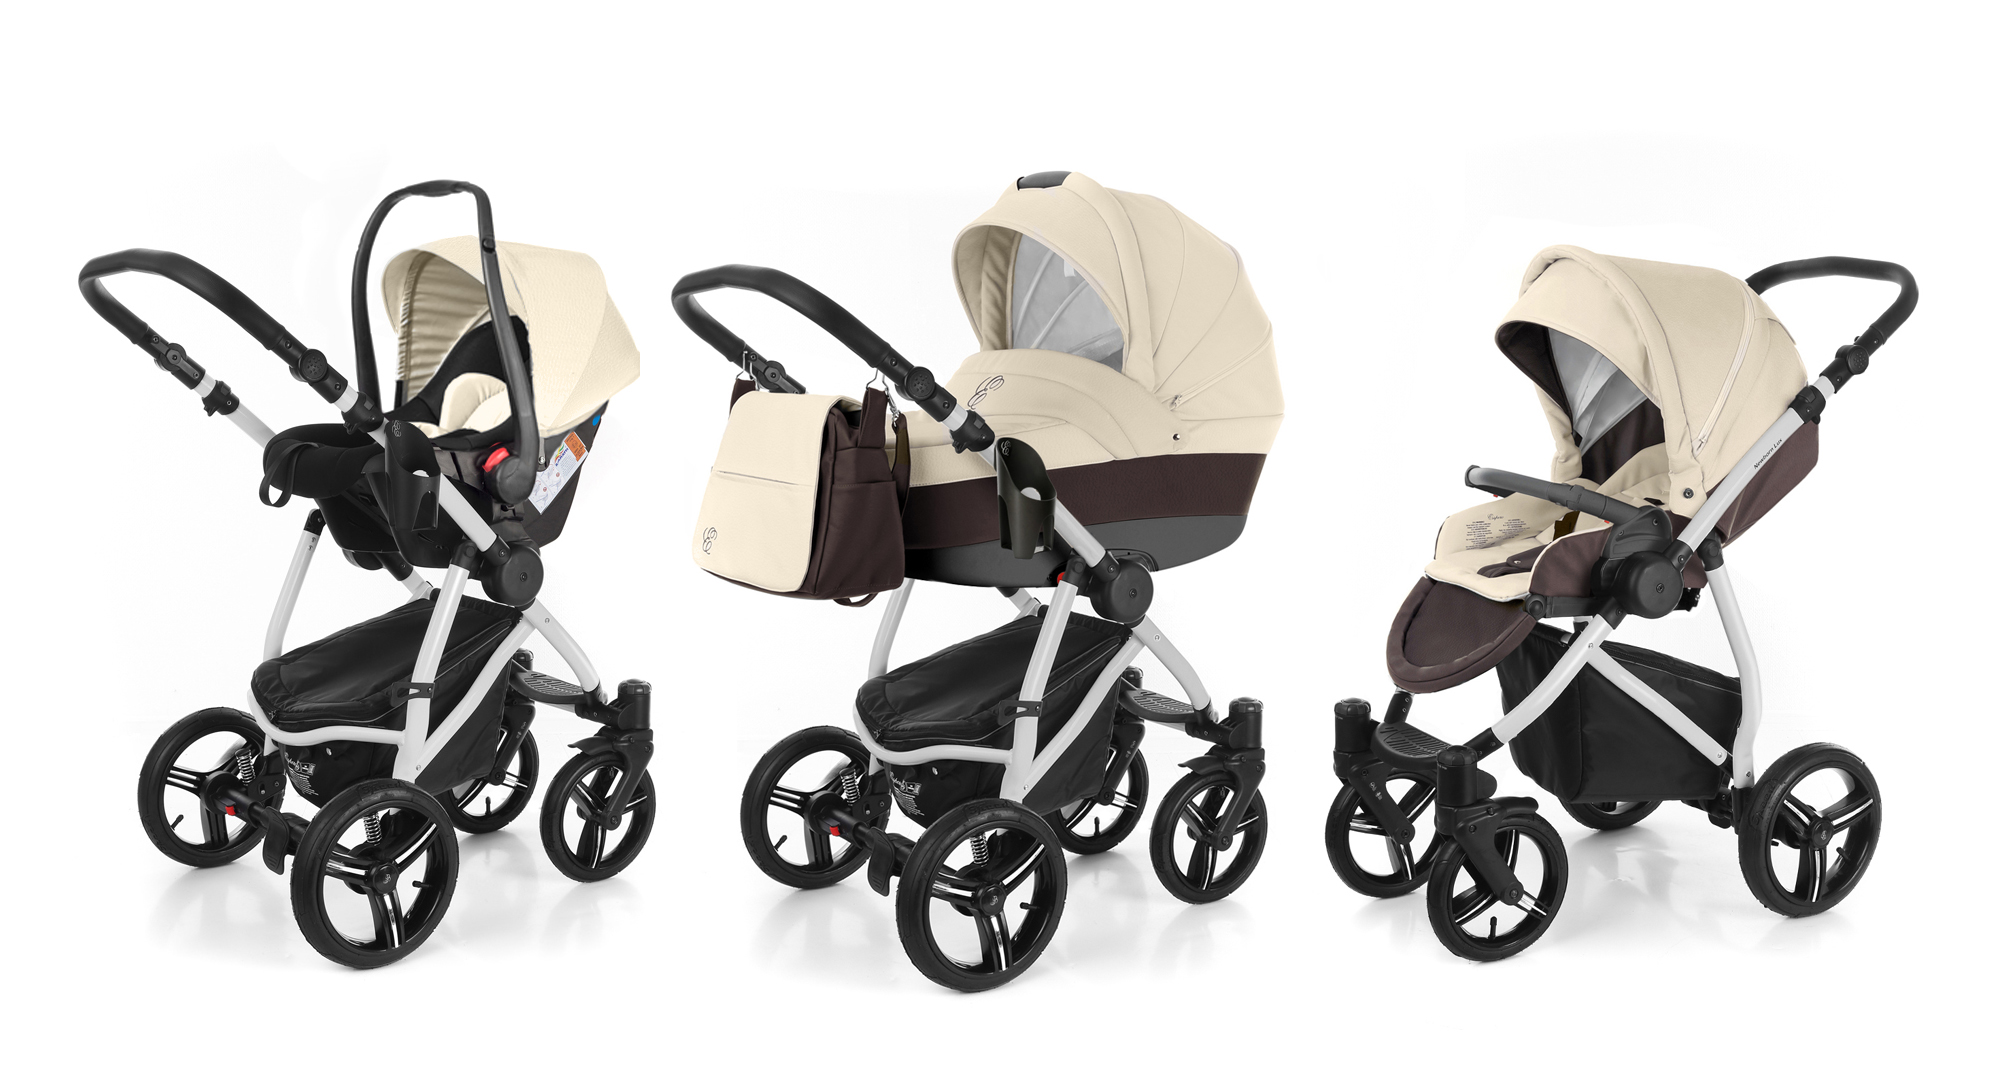 Коляска 3 в 1 Esspero Grand Newborn Lux (шасси Grey). Фото N9